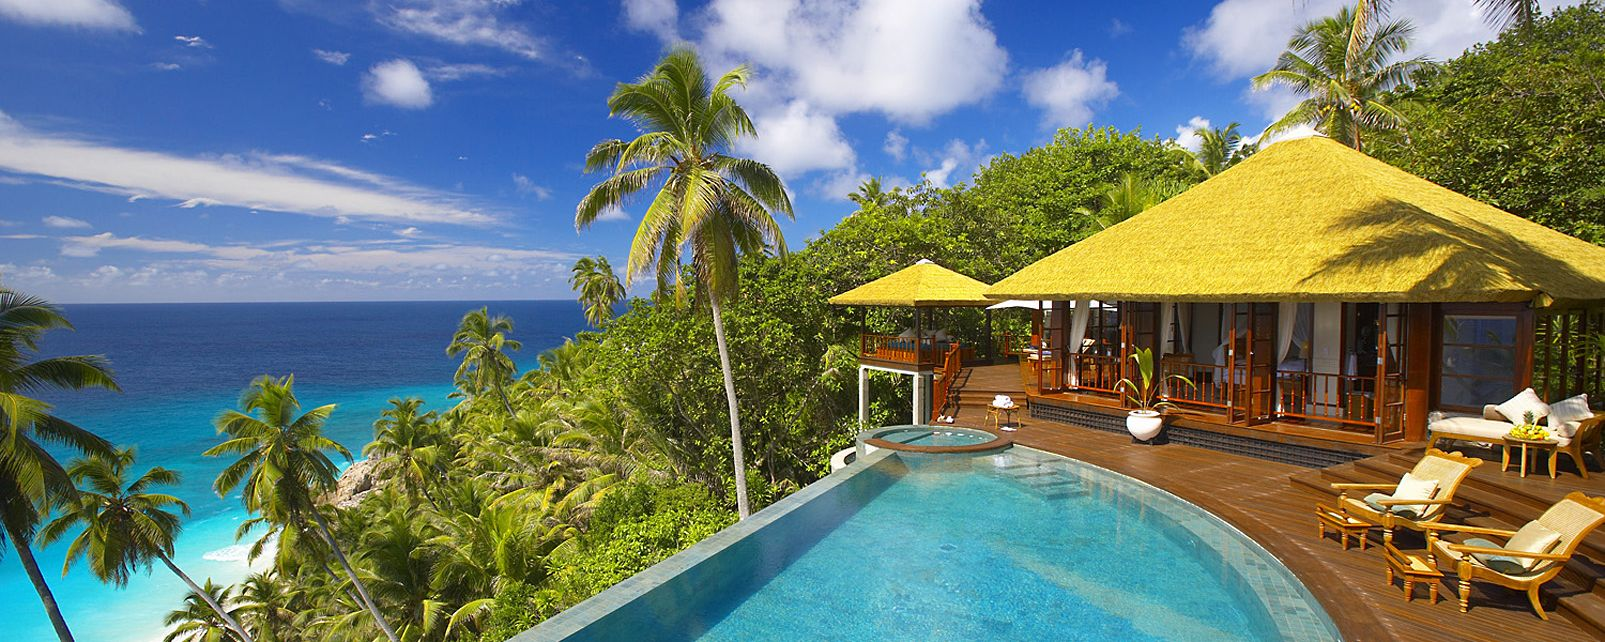 Hôtel Fregate Island Private